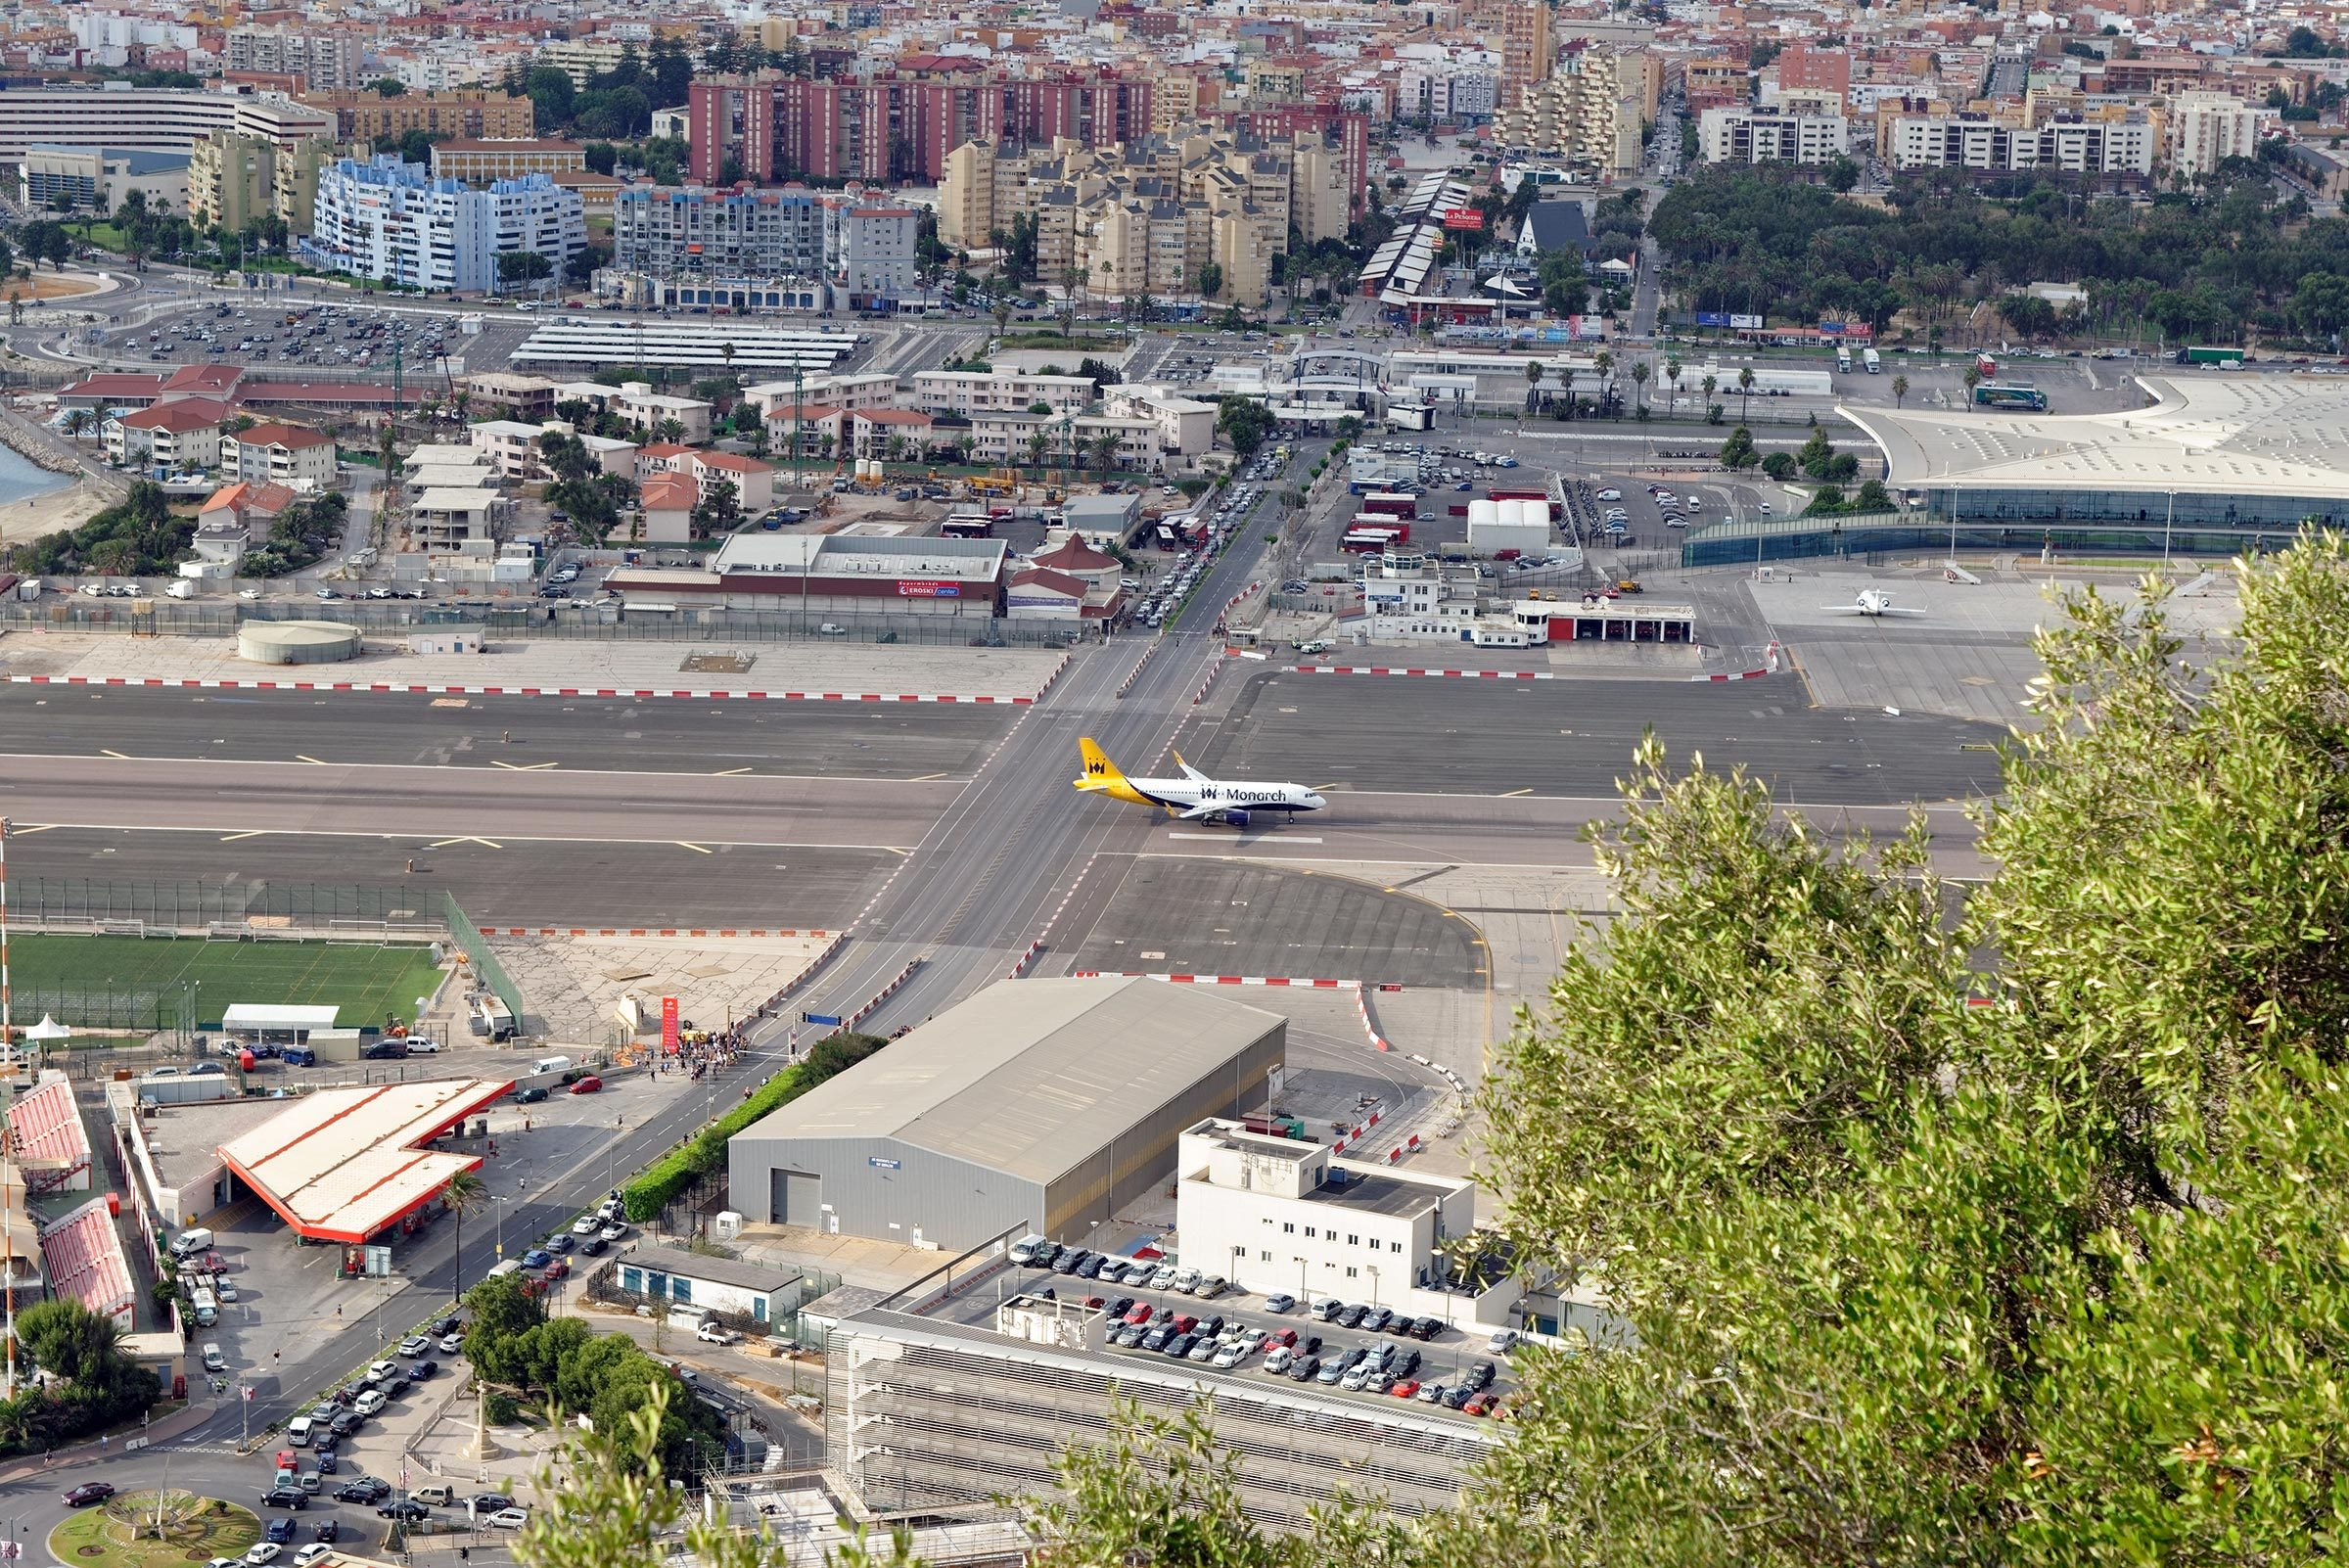 GIBRALTAR - AUGUST 29, 2017: City of Gibraltar, the airport runway with a landed Monarch airplane and La Linea de la Concepcion in Spain.